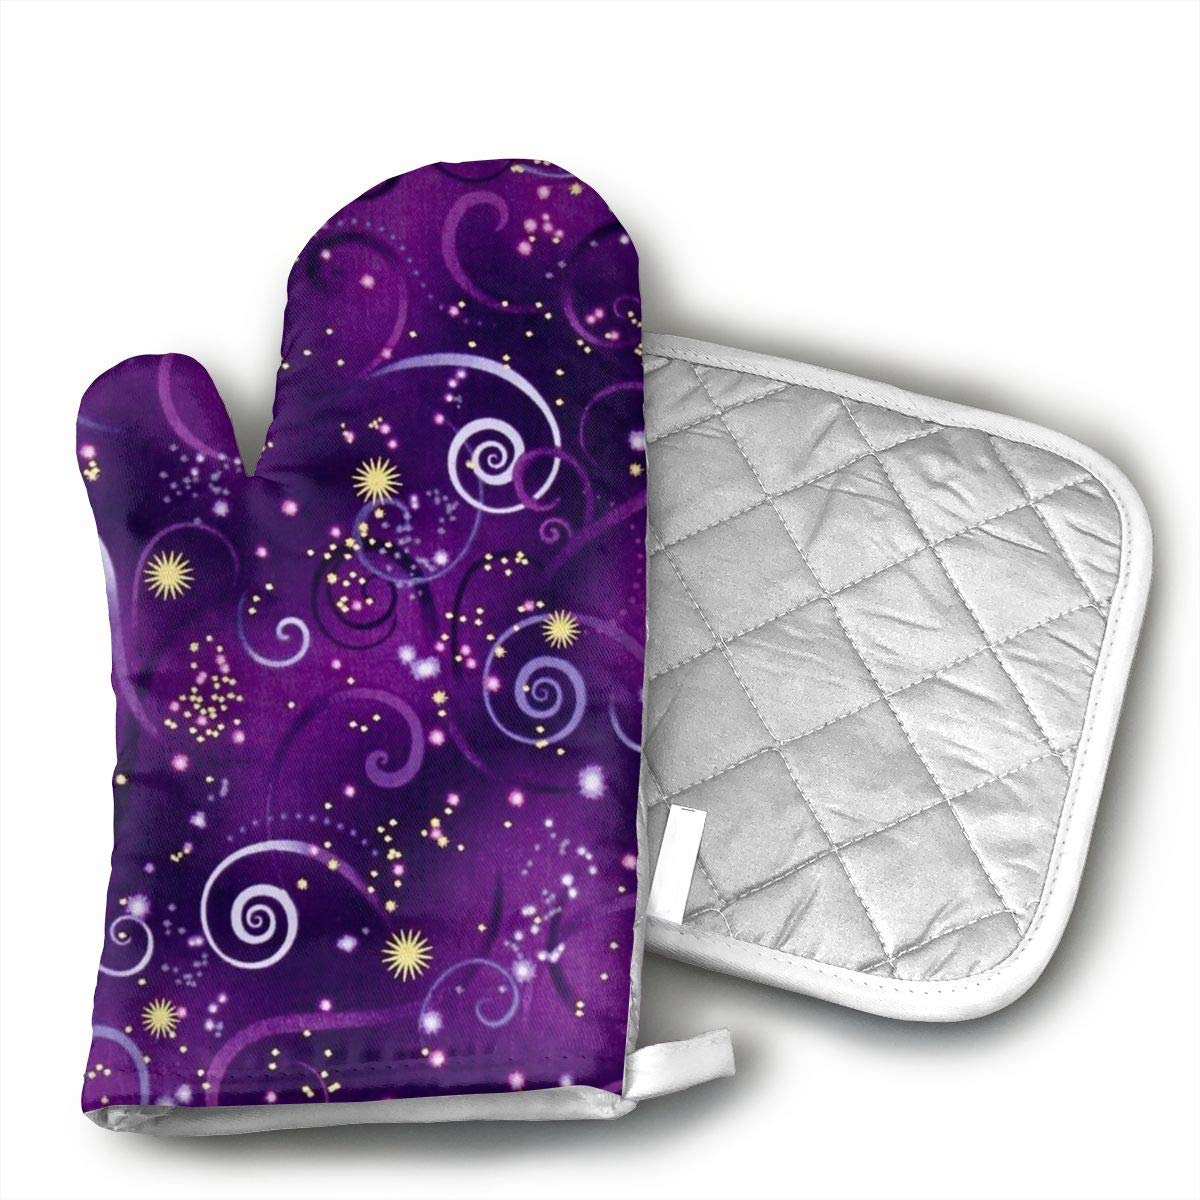 HiHMJ Dragonfly Metallic Swirling Sky Deep Purple Oven Mitts Kitchen Cooking Cotton Microwave Oven Gloves Mitts Pot Pad Heat Proof Protected Gloves